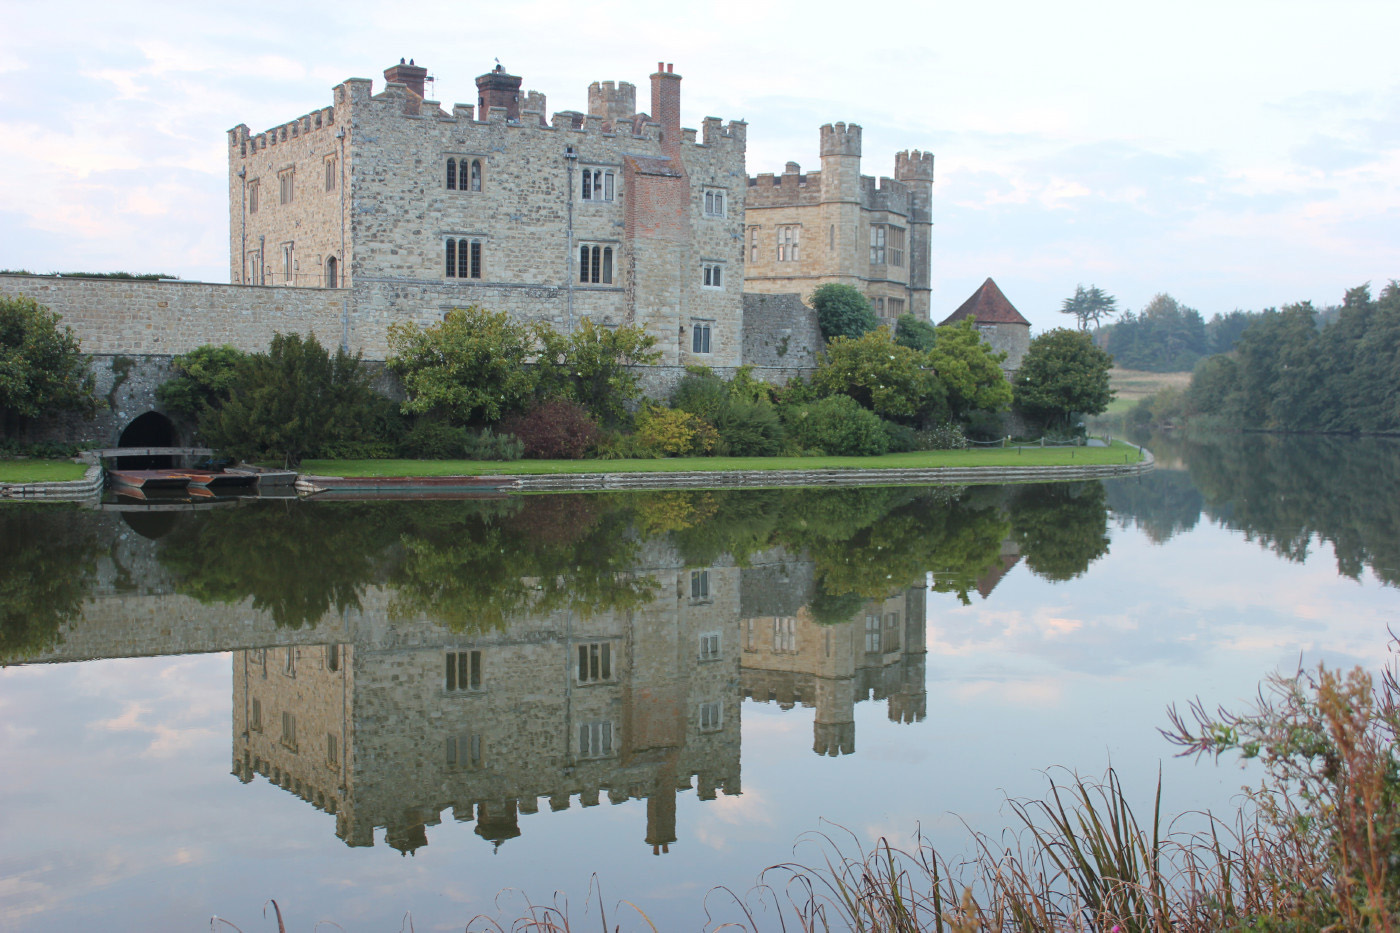 Reflection of Leeds Castle